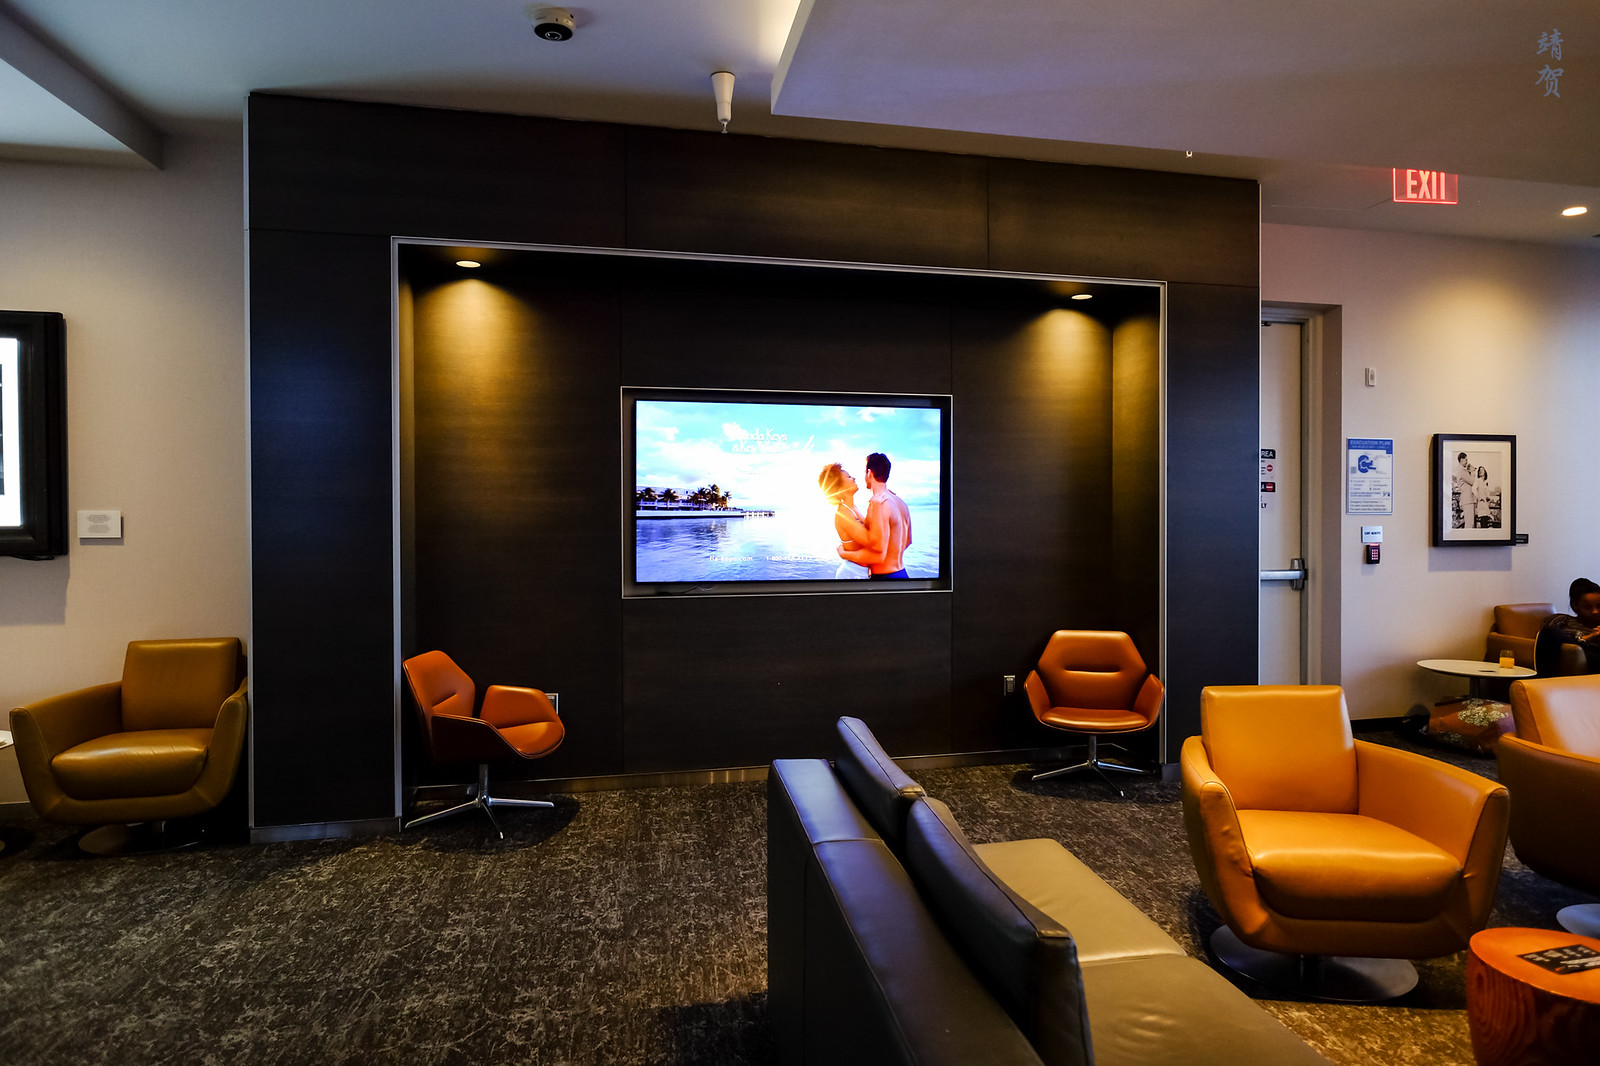 Lounge area with view of the TV